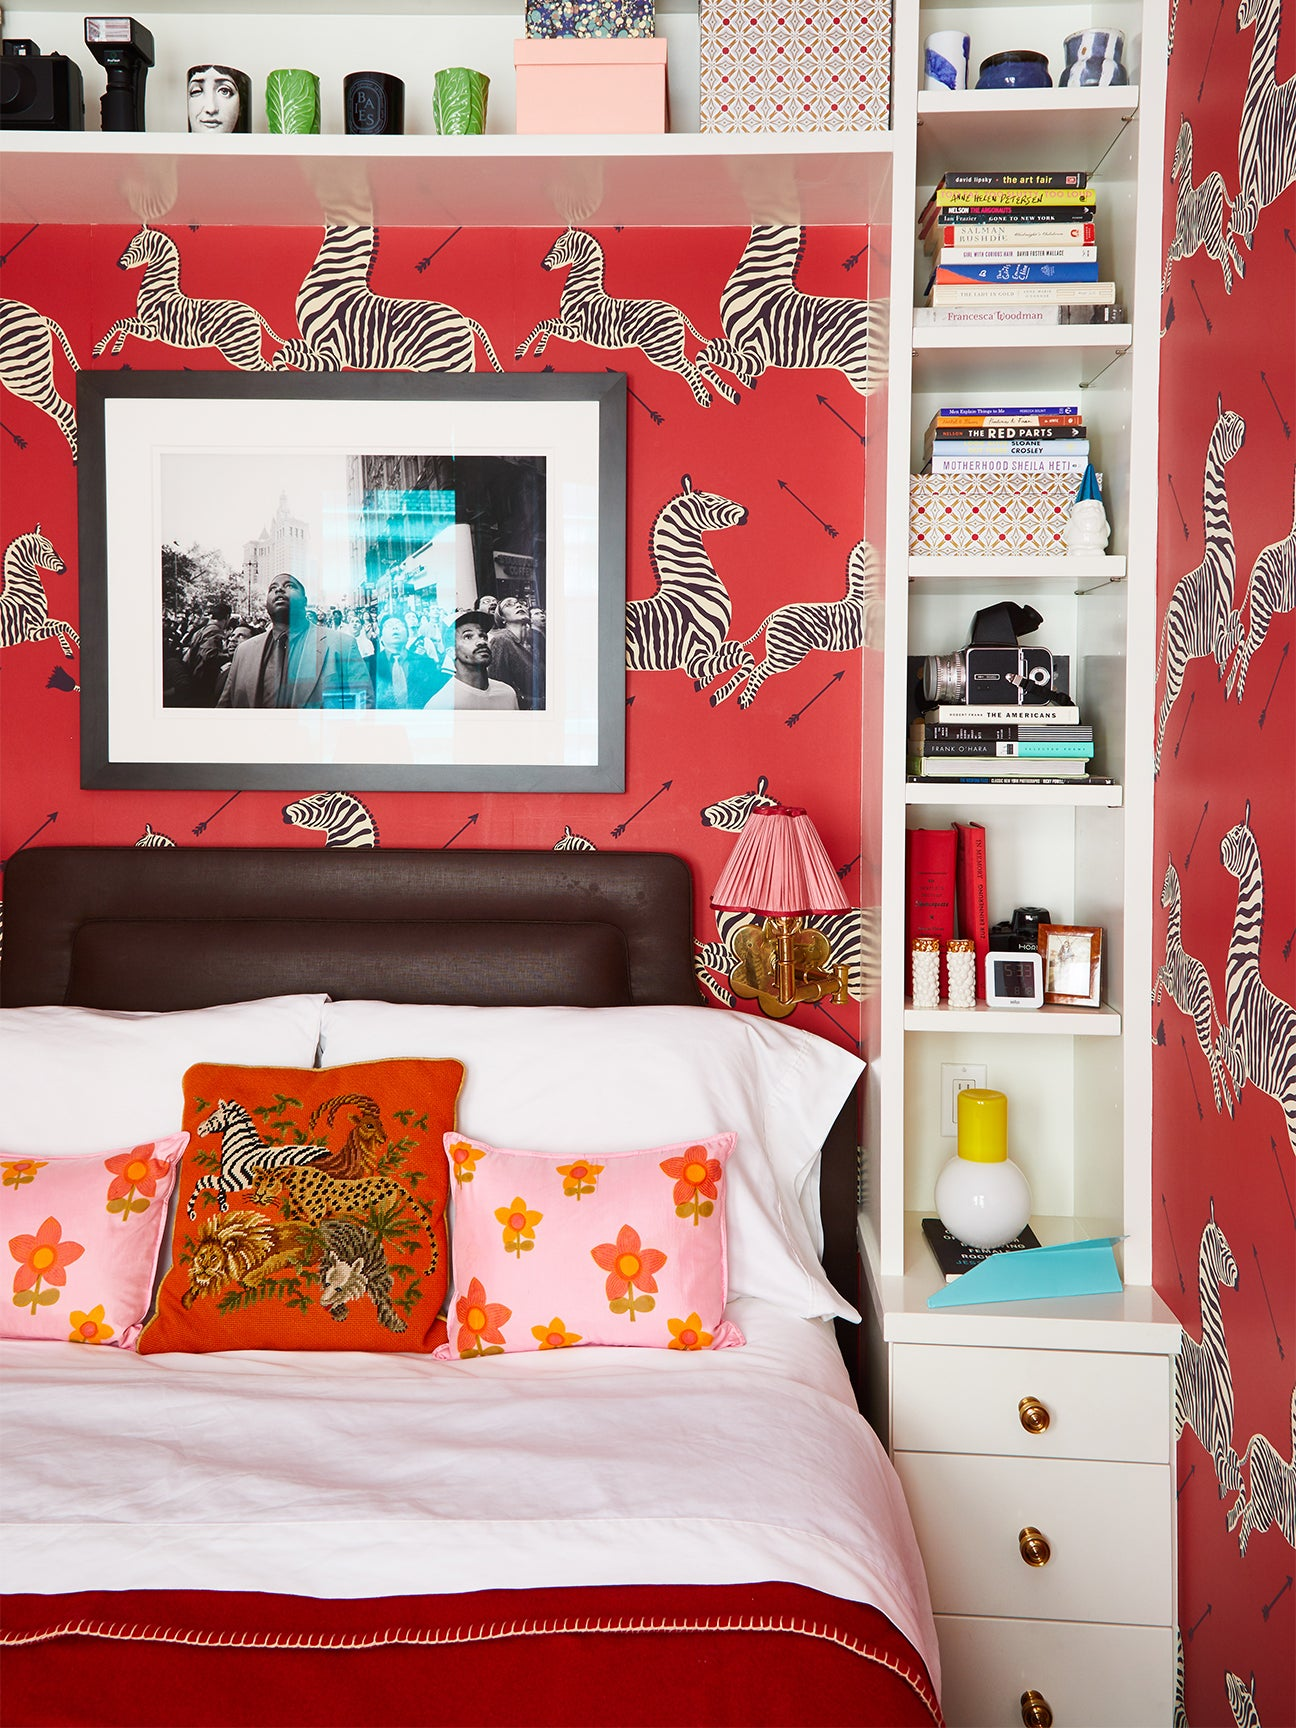 Small bedroom with red zebra wallpaper